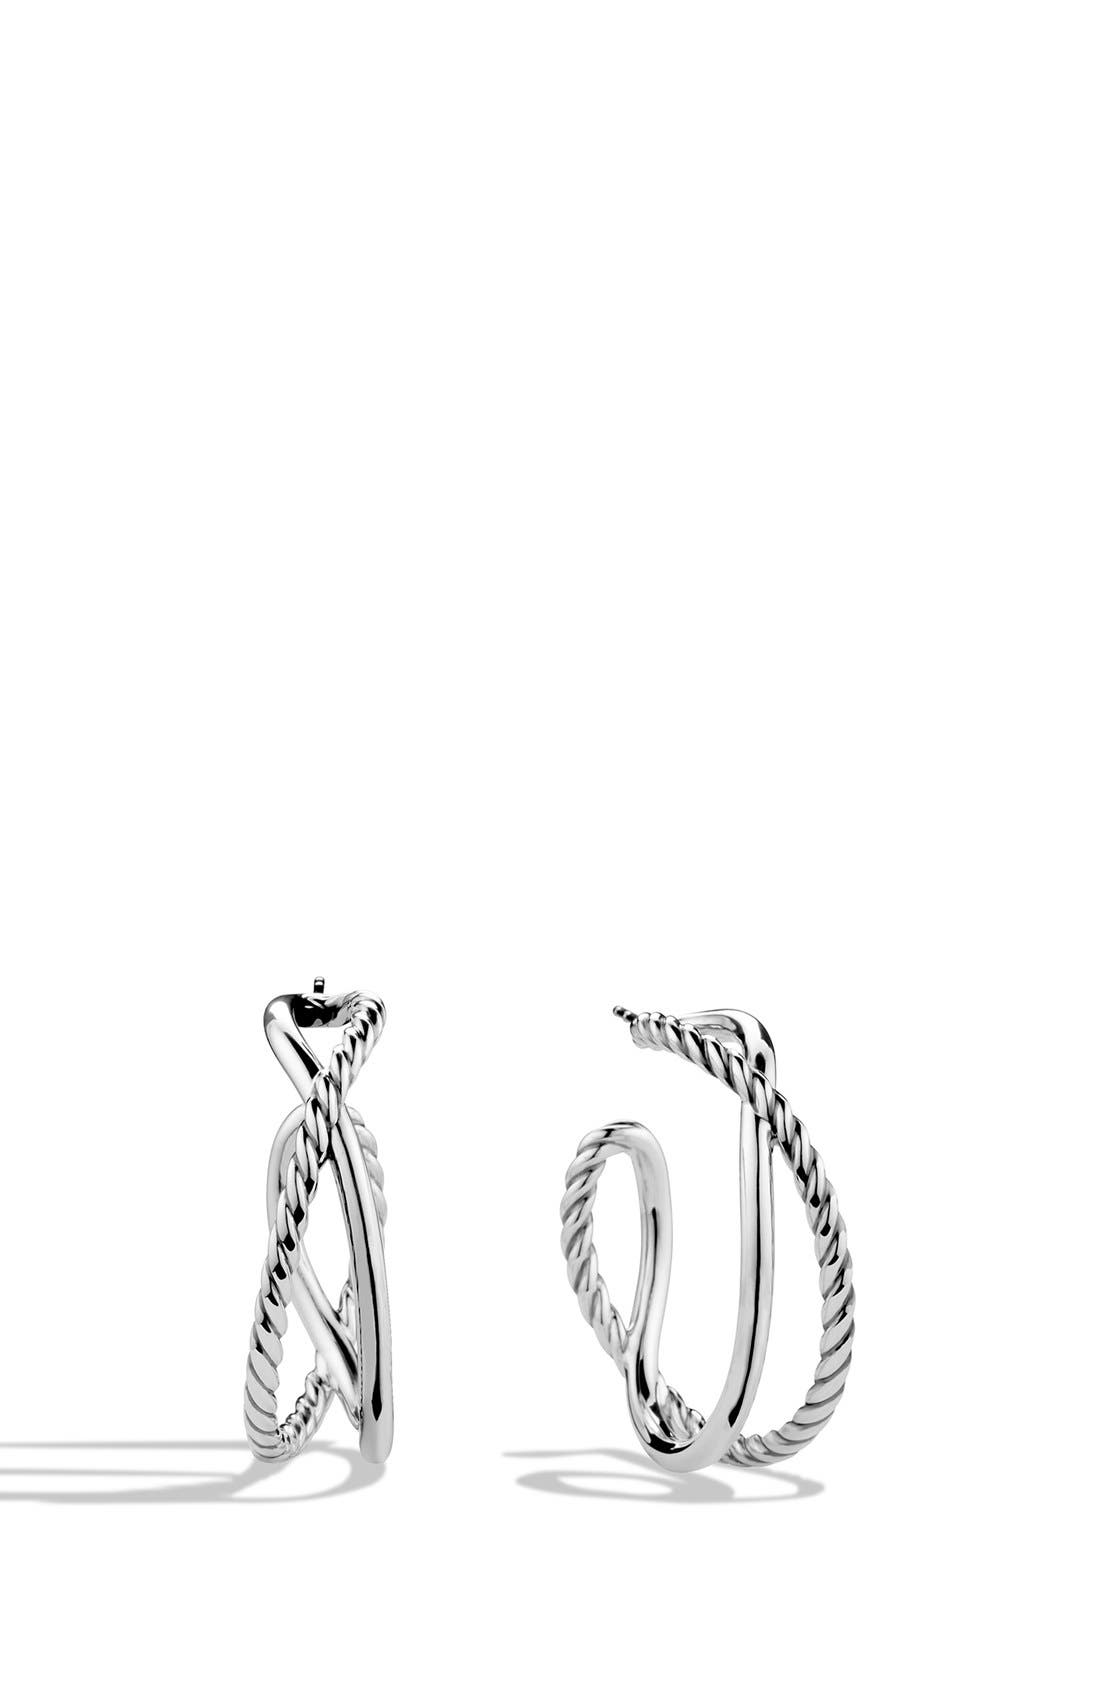 David Yurman 'Crossover' Hoop Earrings